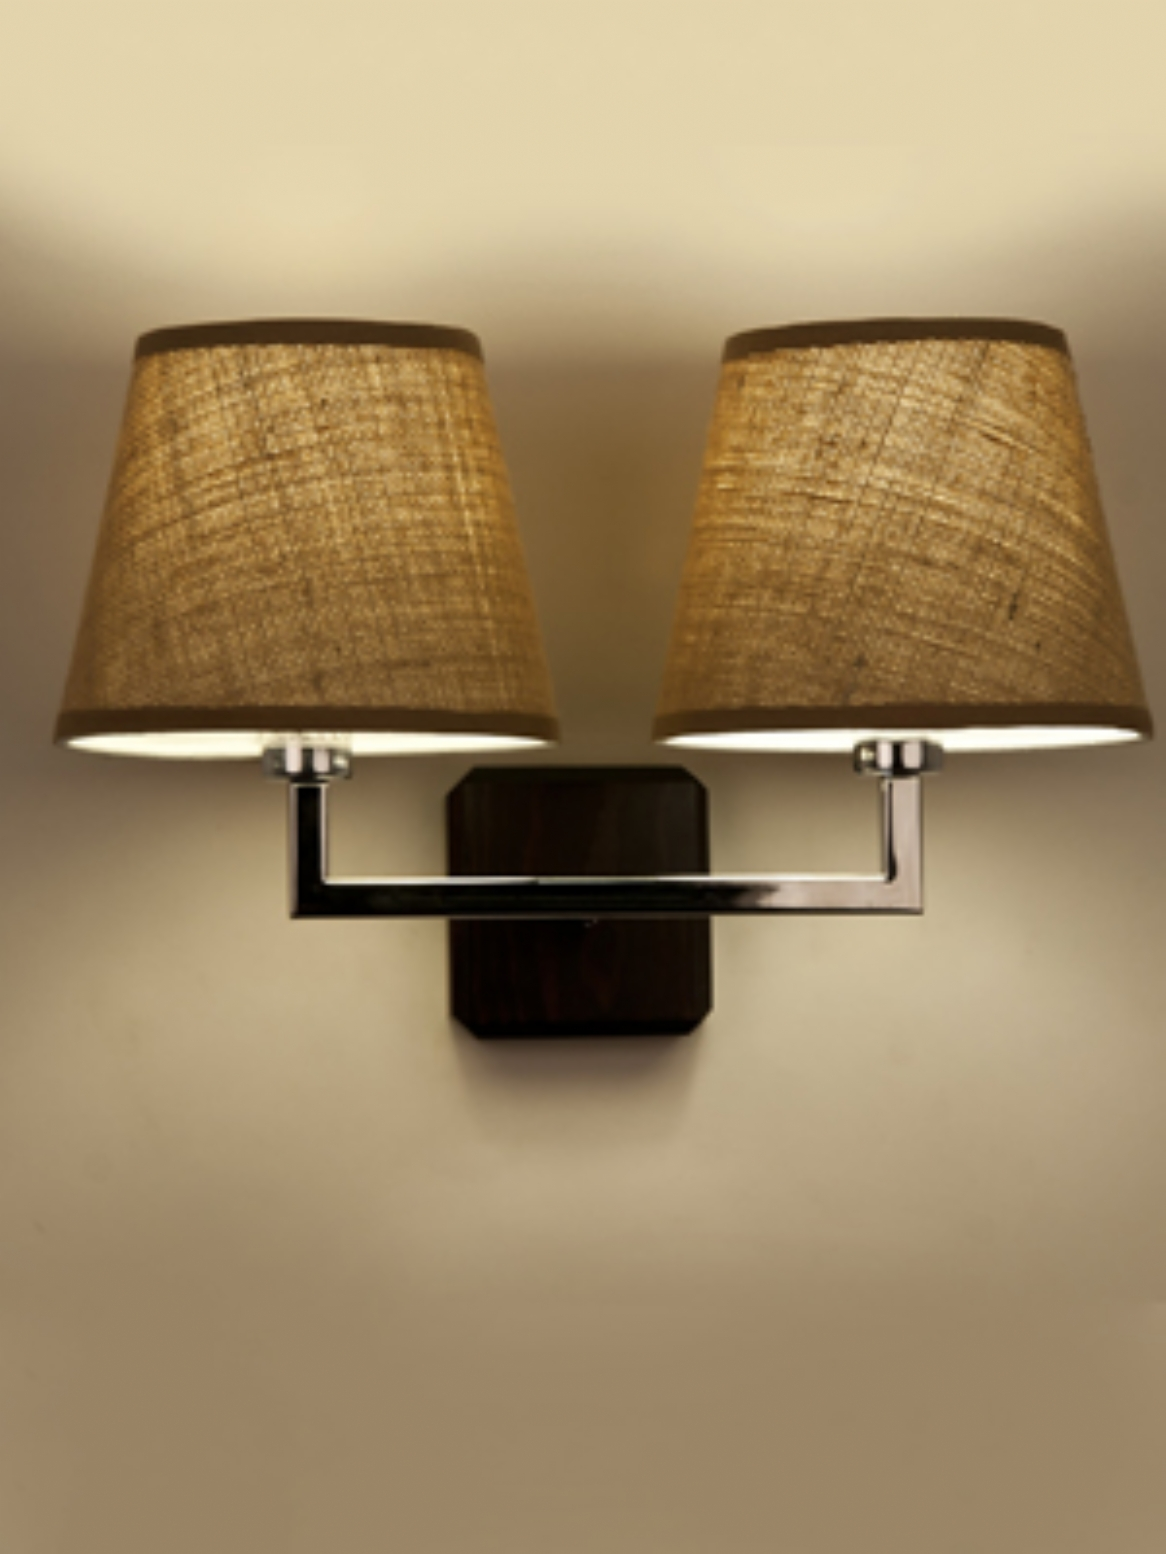 Lamp Shades Wall Lamps : Fabric wall light shades - upgrade your interior design on a small budget Warisan Lighting